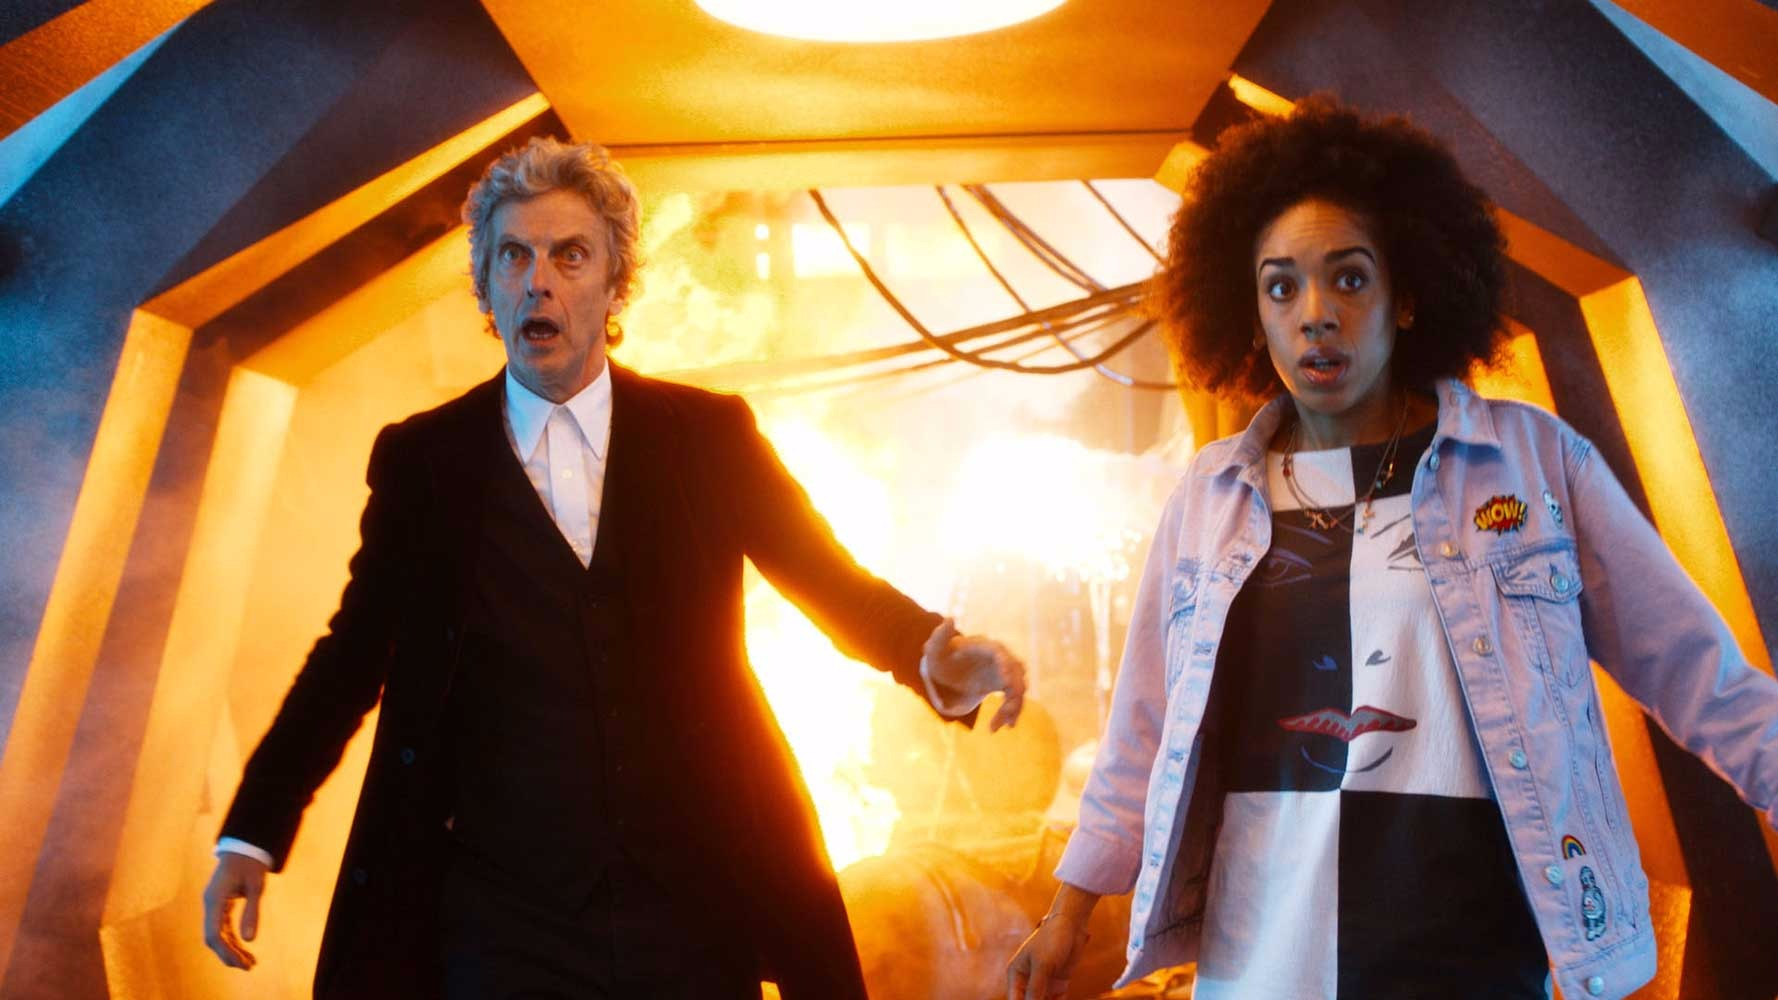 The Doctor (PETER CAPALDI) and Bill (PEARL MACKIE) from Doctor Who Season 10, Episode 1